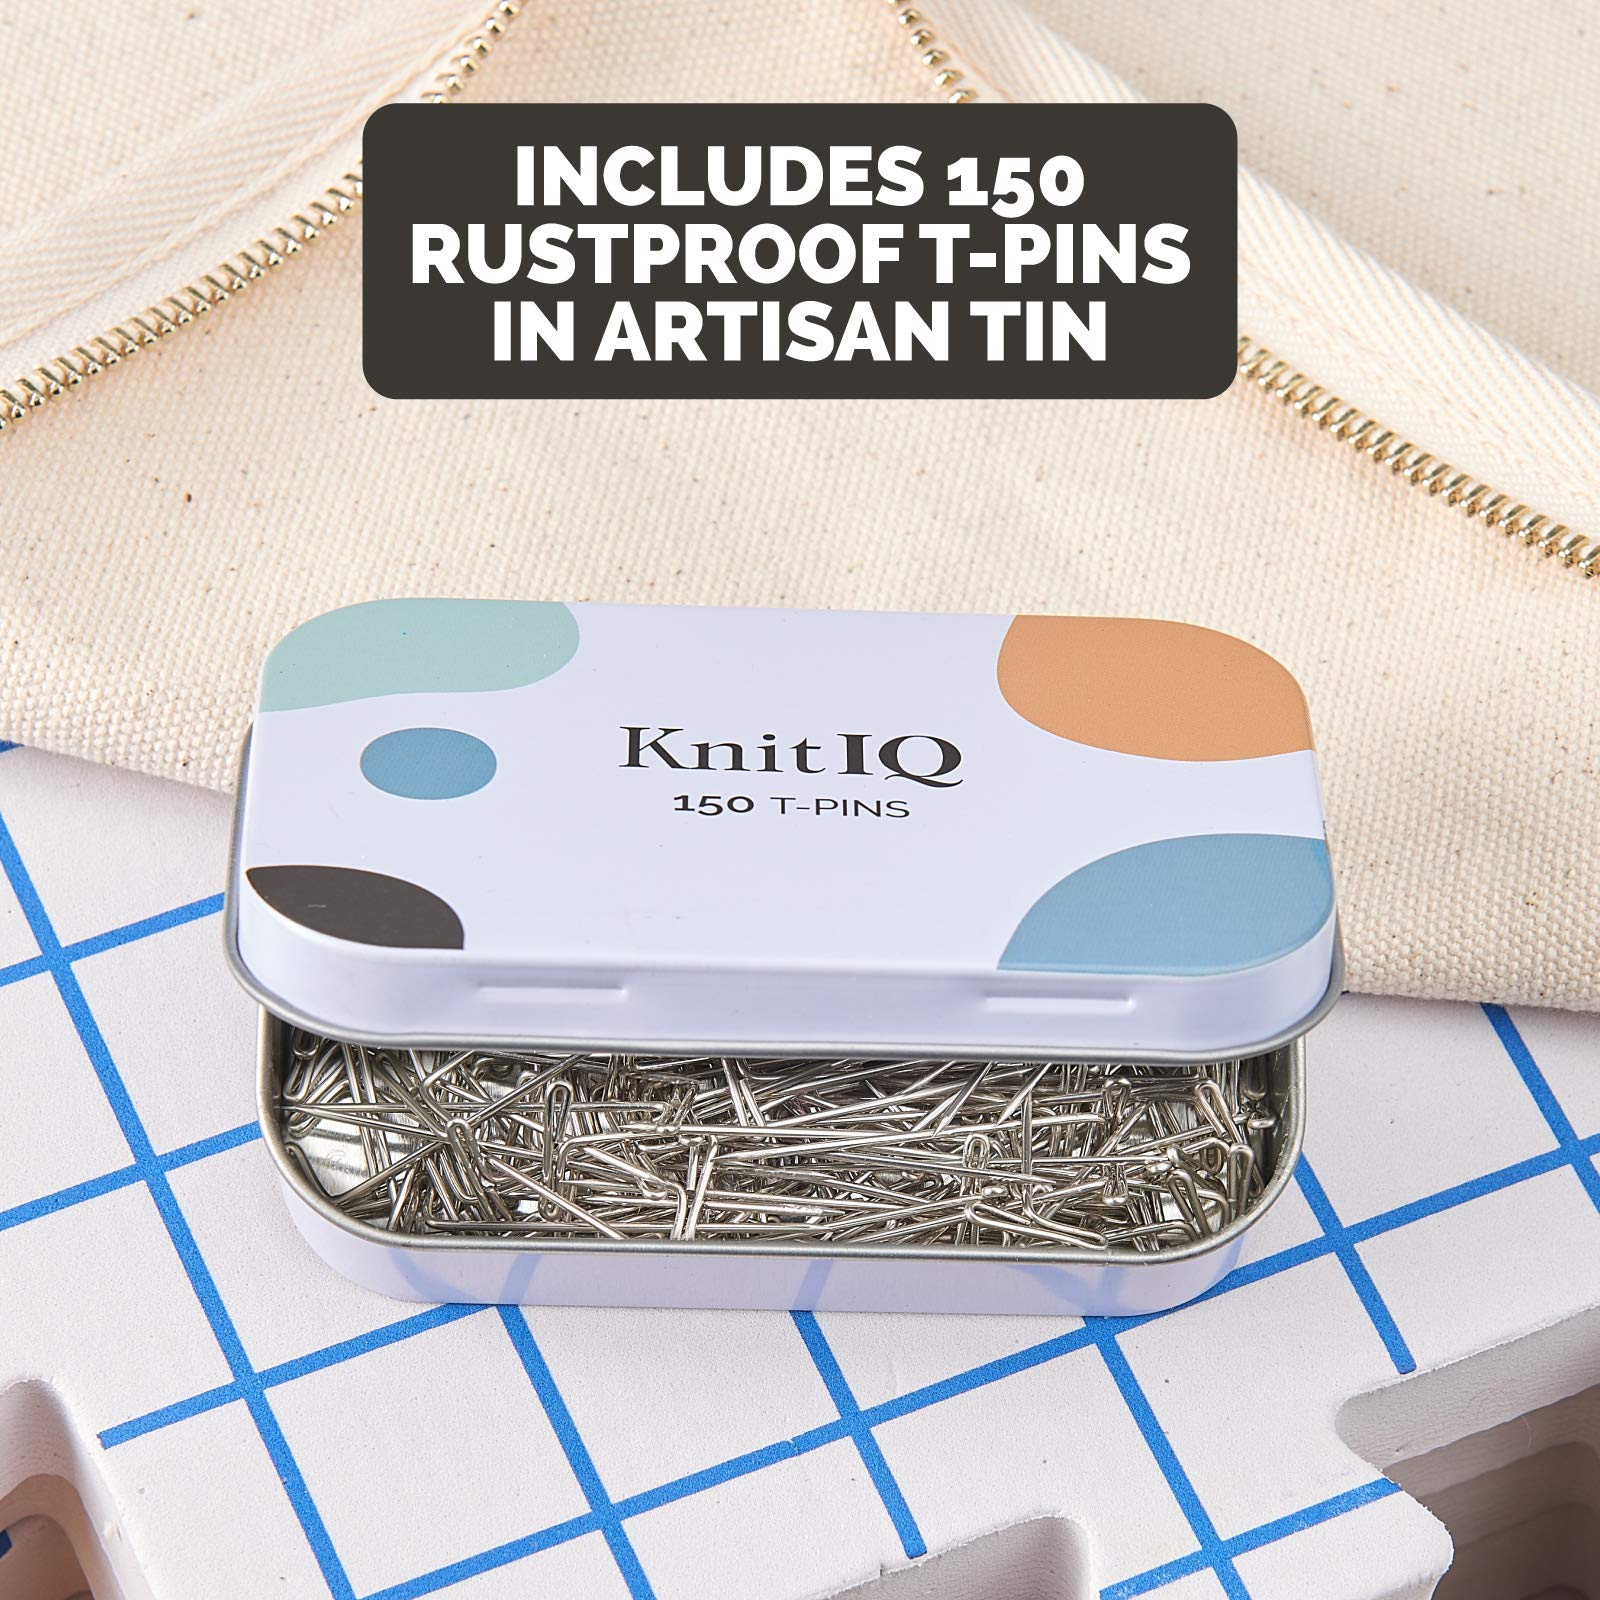 KnitIQ Blocking Mats for Knitting Premium Set - Extra Thick Blocking Boards with Grids, 150 Strong and Rustproof T-Pins in Artisan Tin, Quality Knitting Bag for Needlework or Crochet - Pack of 9 by KnitIQ (Image #6)